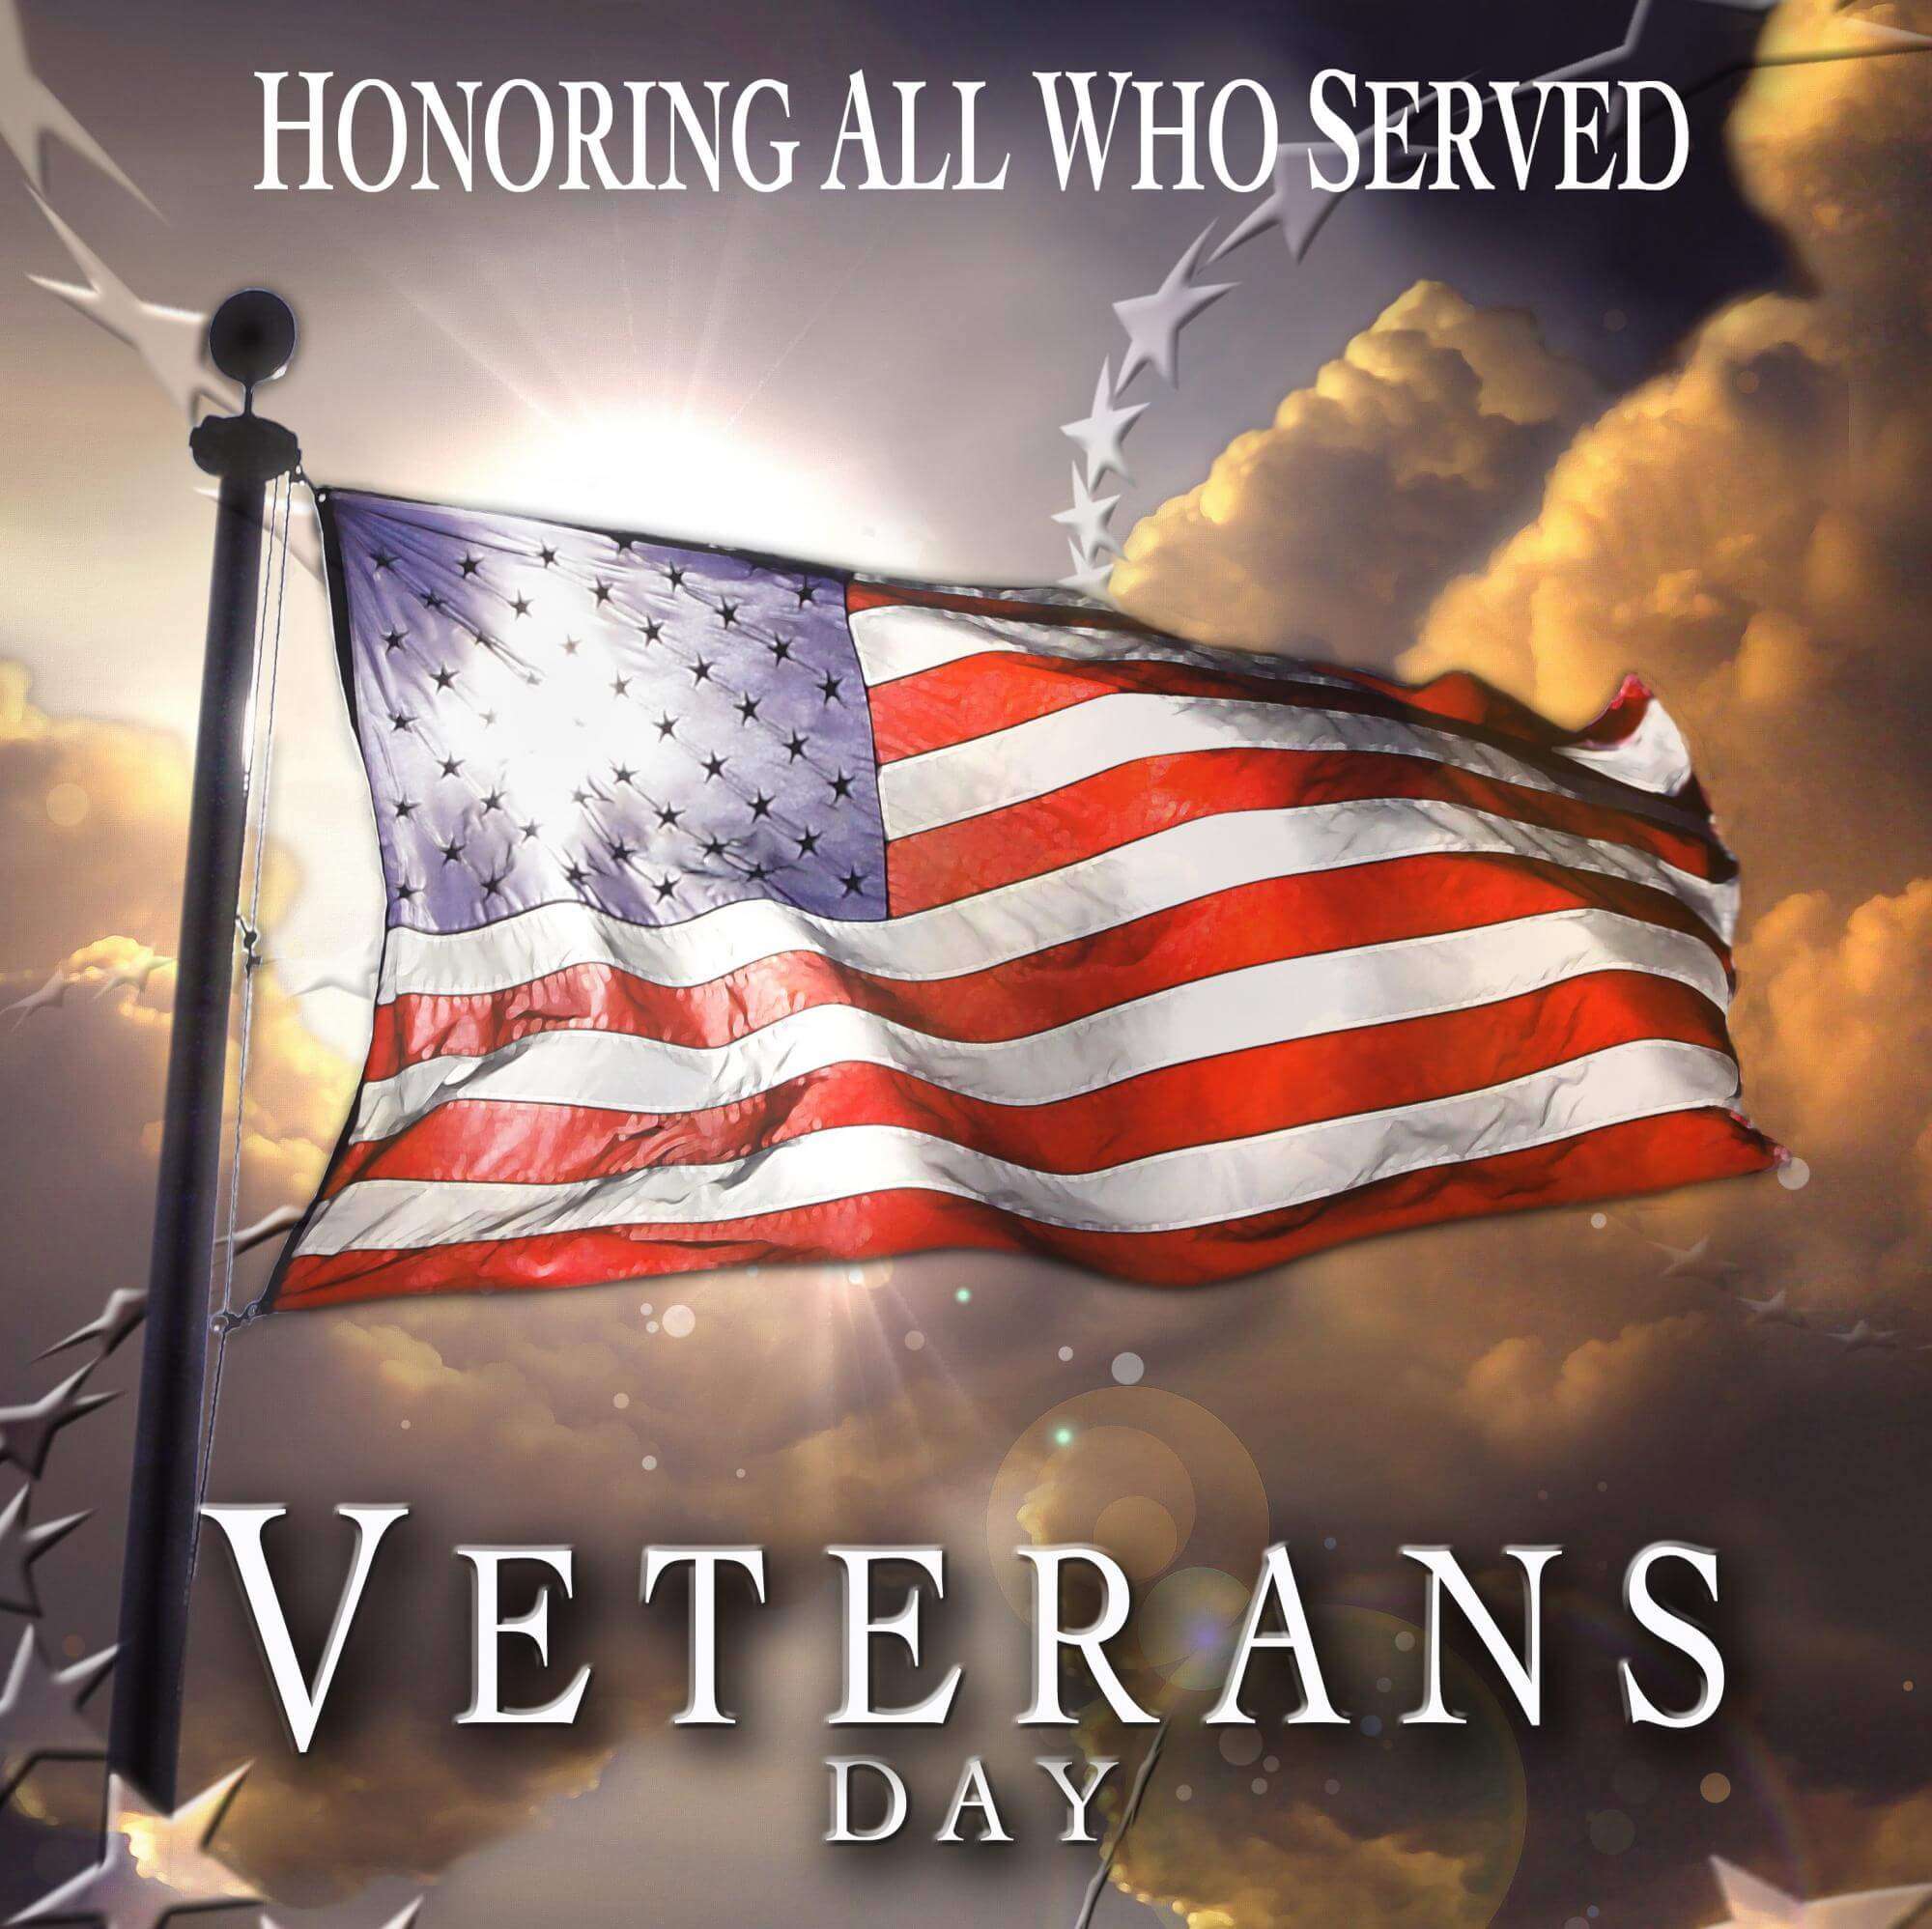 veterans day usa honoring all who served hd wallpaper